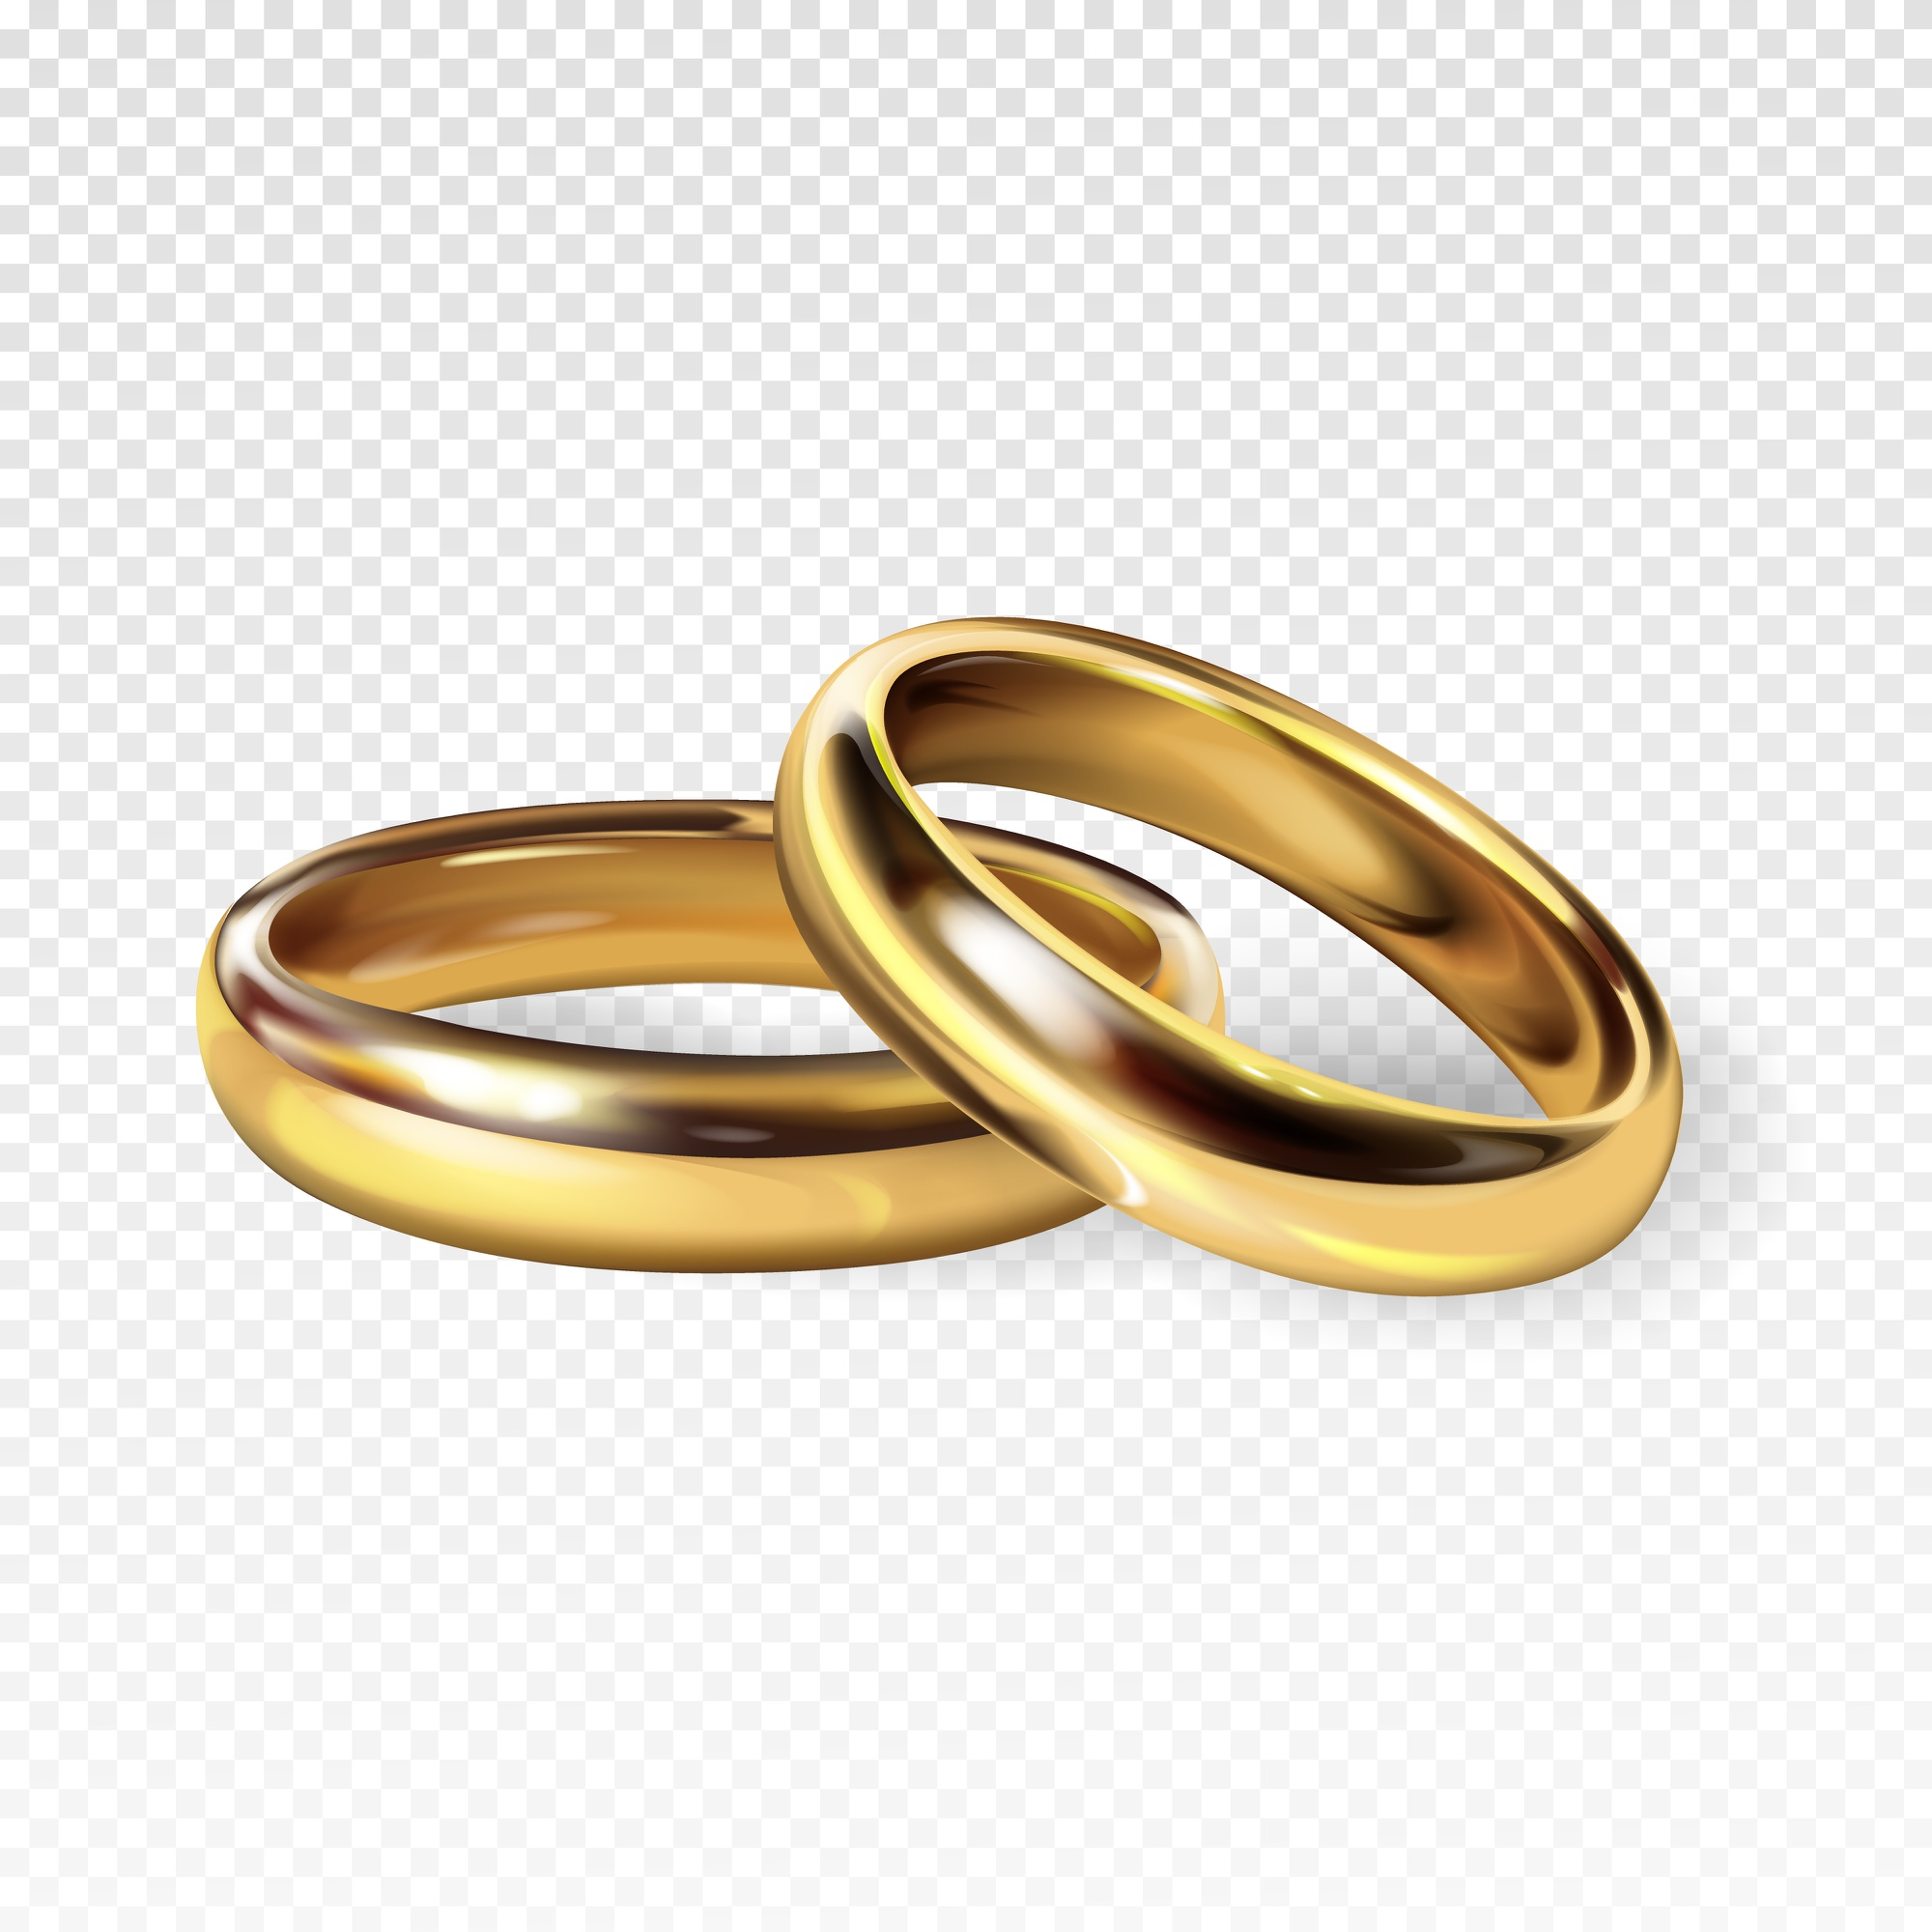 Golden wedding rings 3d realistic illustration for engagement